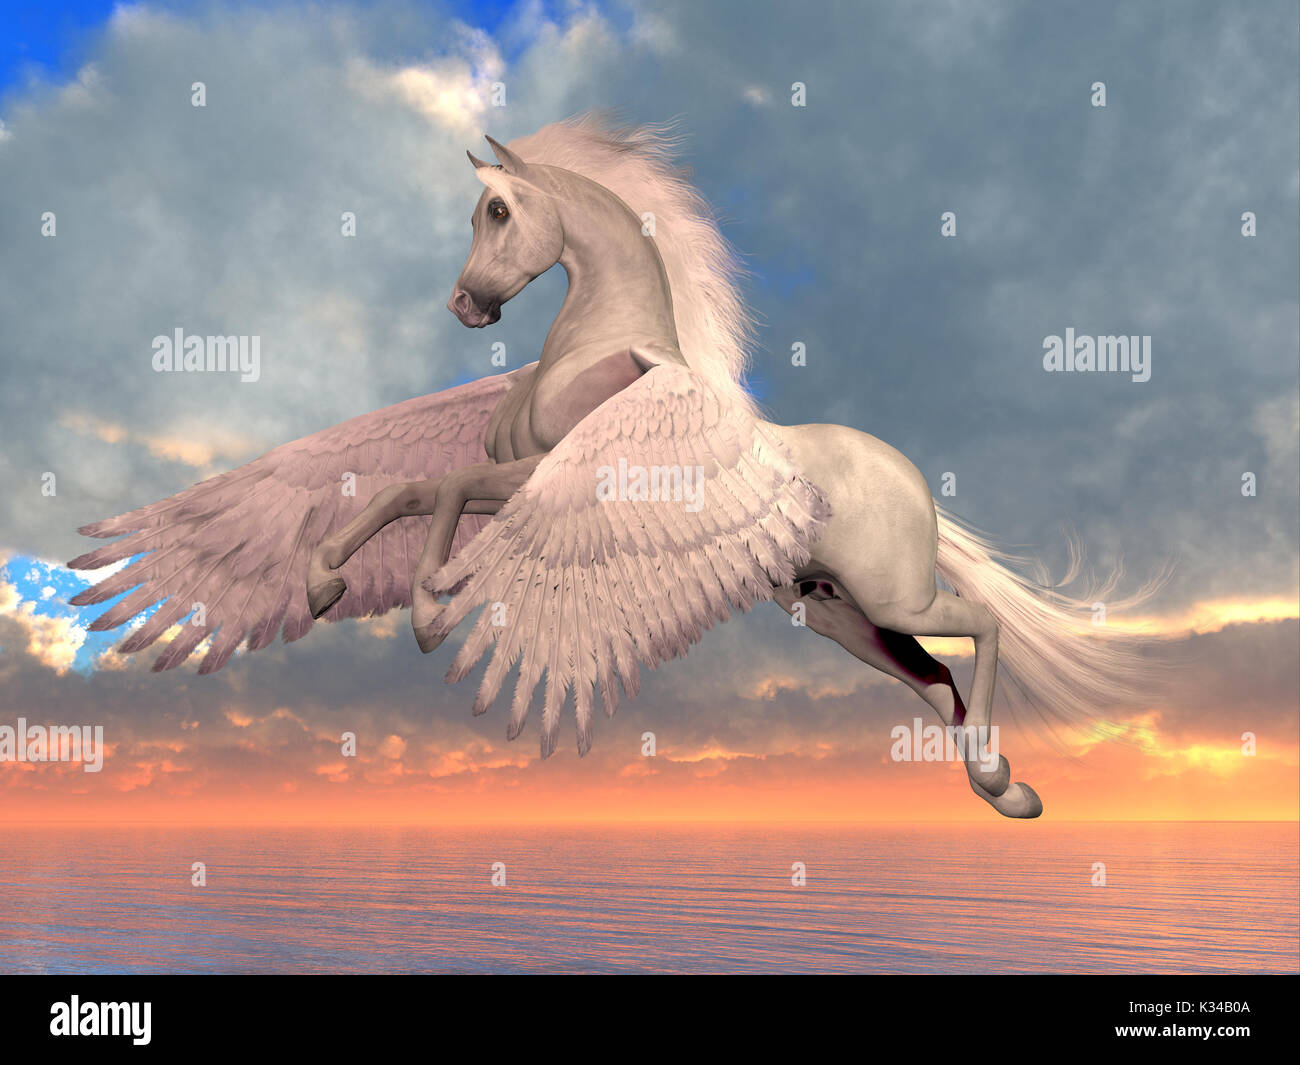 An Arabian Pegasus horse rises on powerful wings to fly over the ocean on a sunny day. - Stock Image